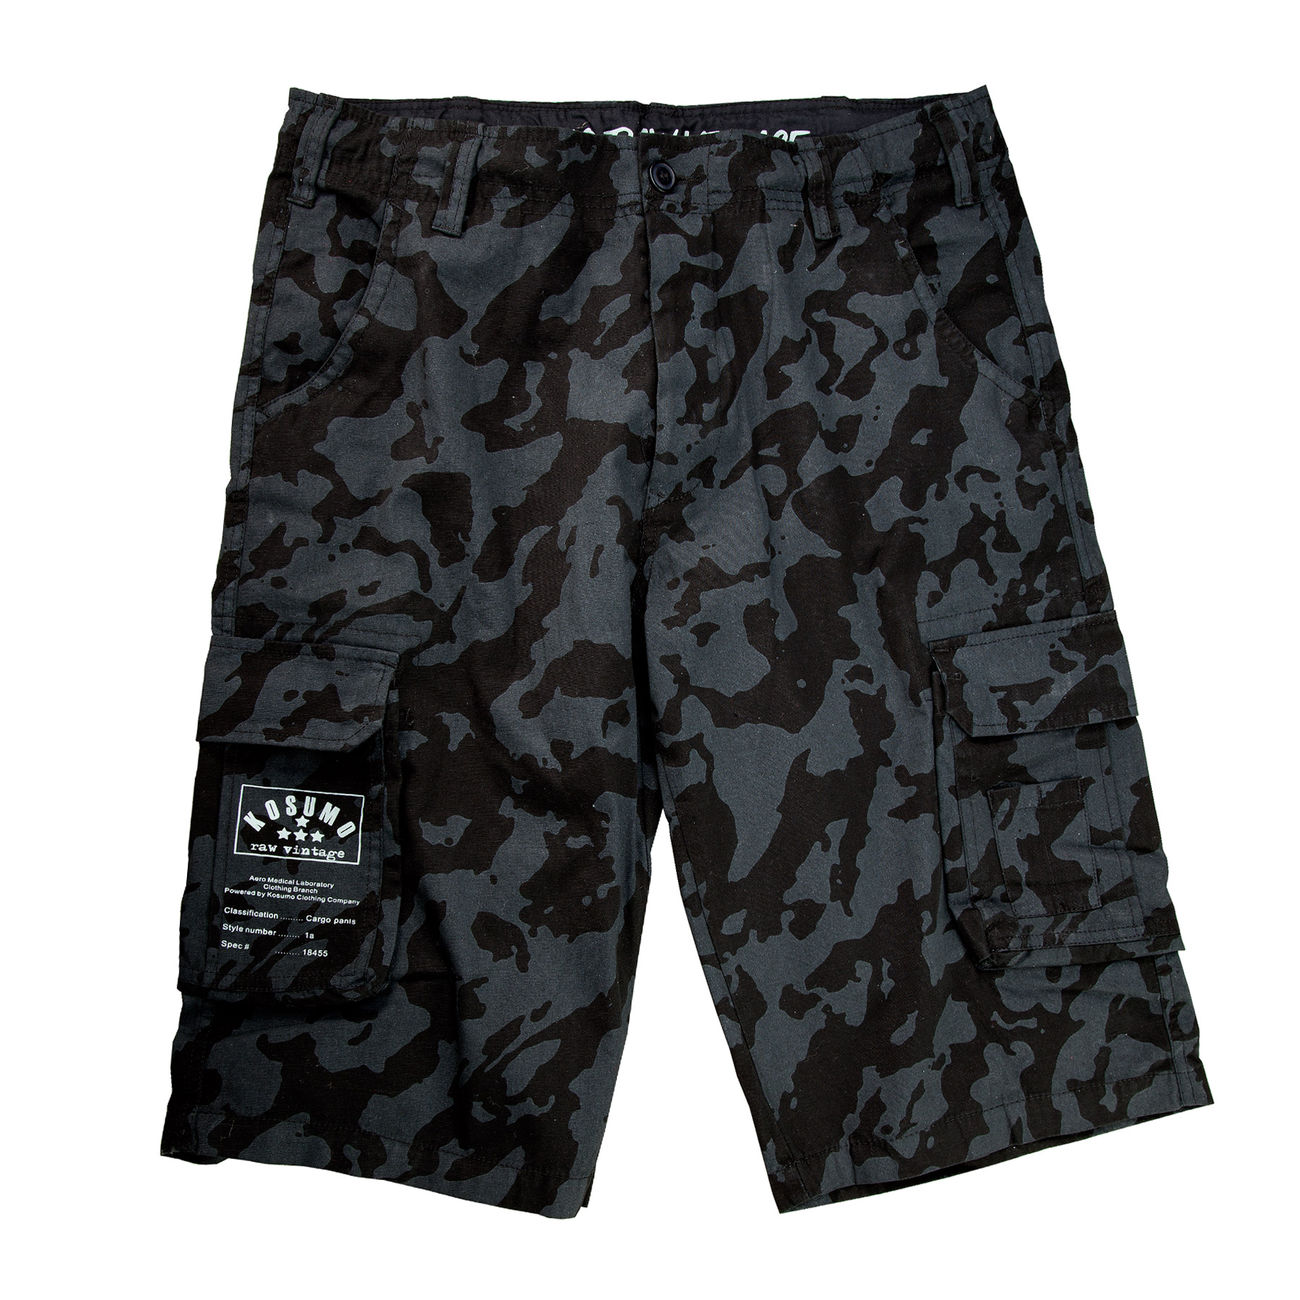 Kosumo Shorts stone washed night camo 0